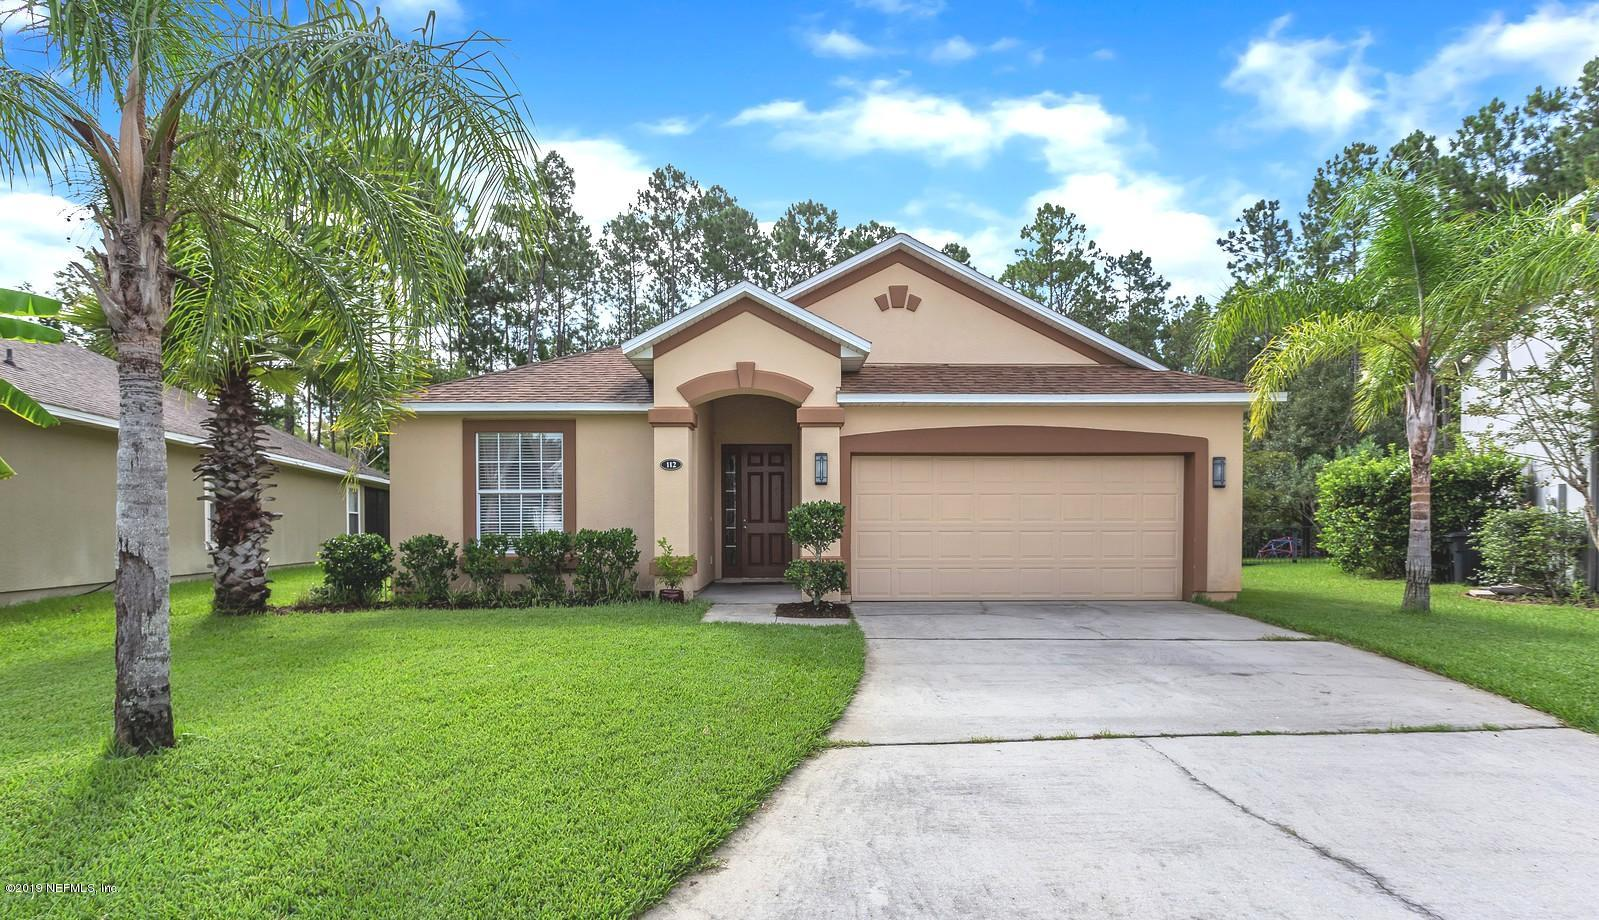 112 BURGHEAD, ST JOHNS, FLORIDA 32259, 4 Bedrooms Bedrooms, ,2 BathroomsBathrooms,Residential - single family,For sale,BURGHEAD,1011492